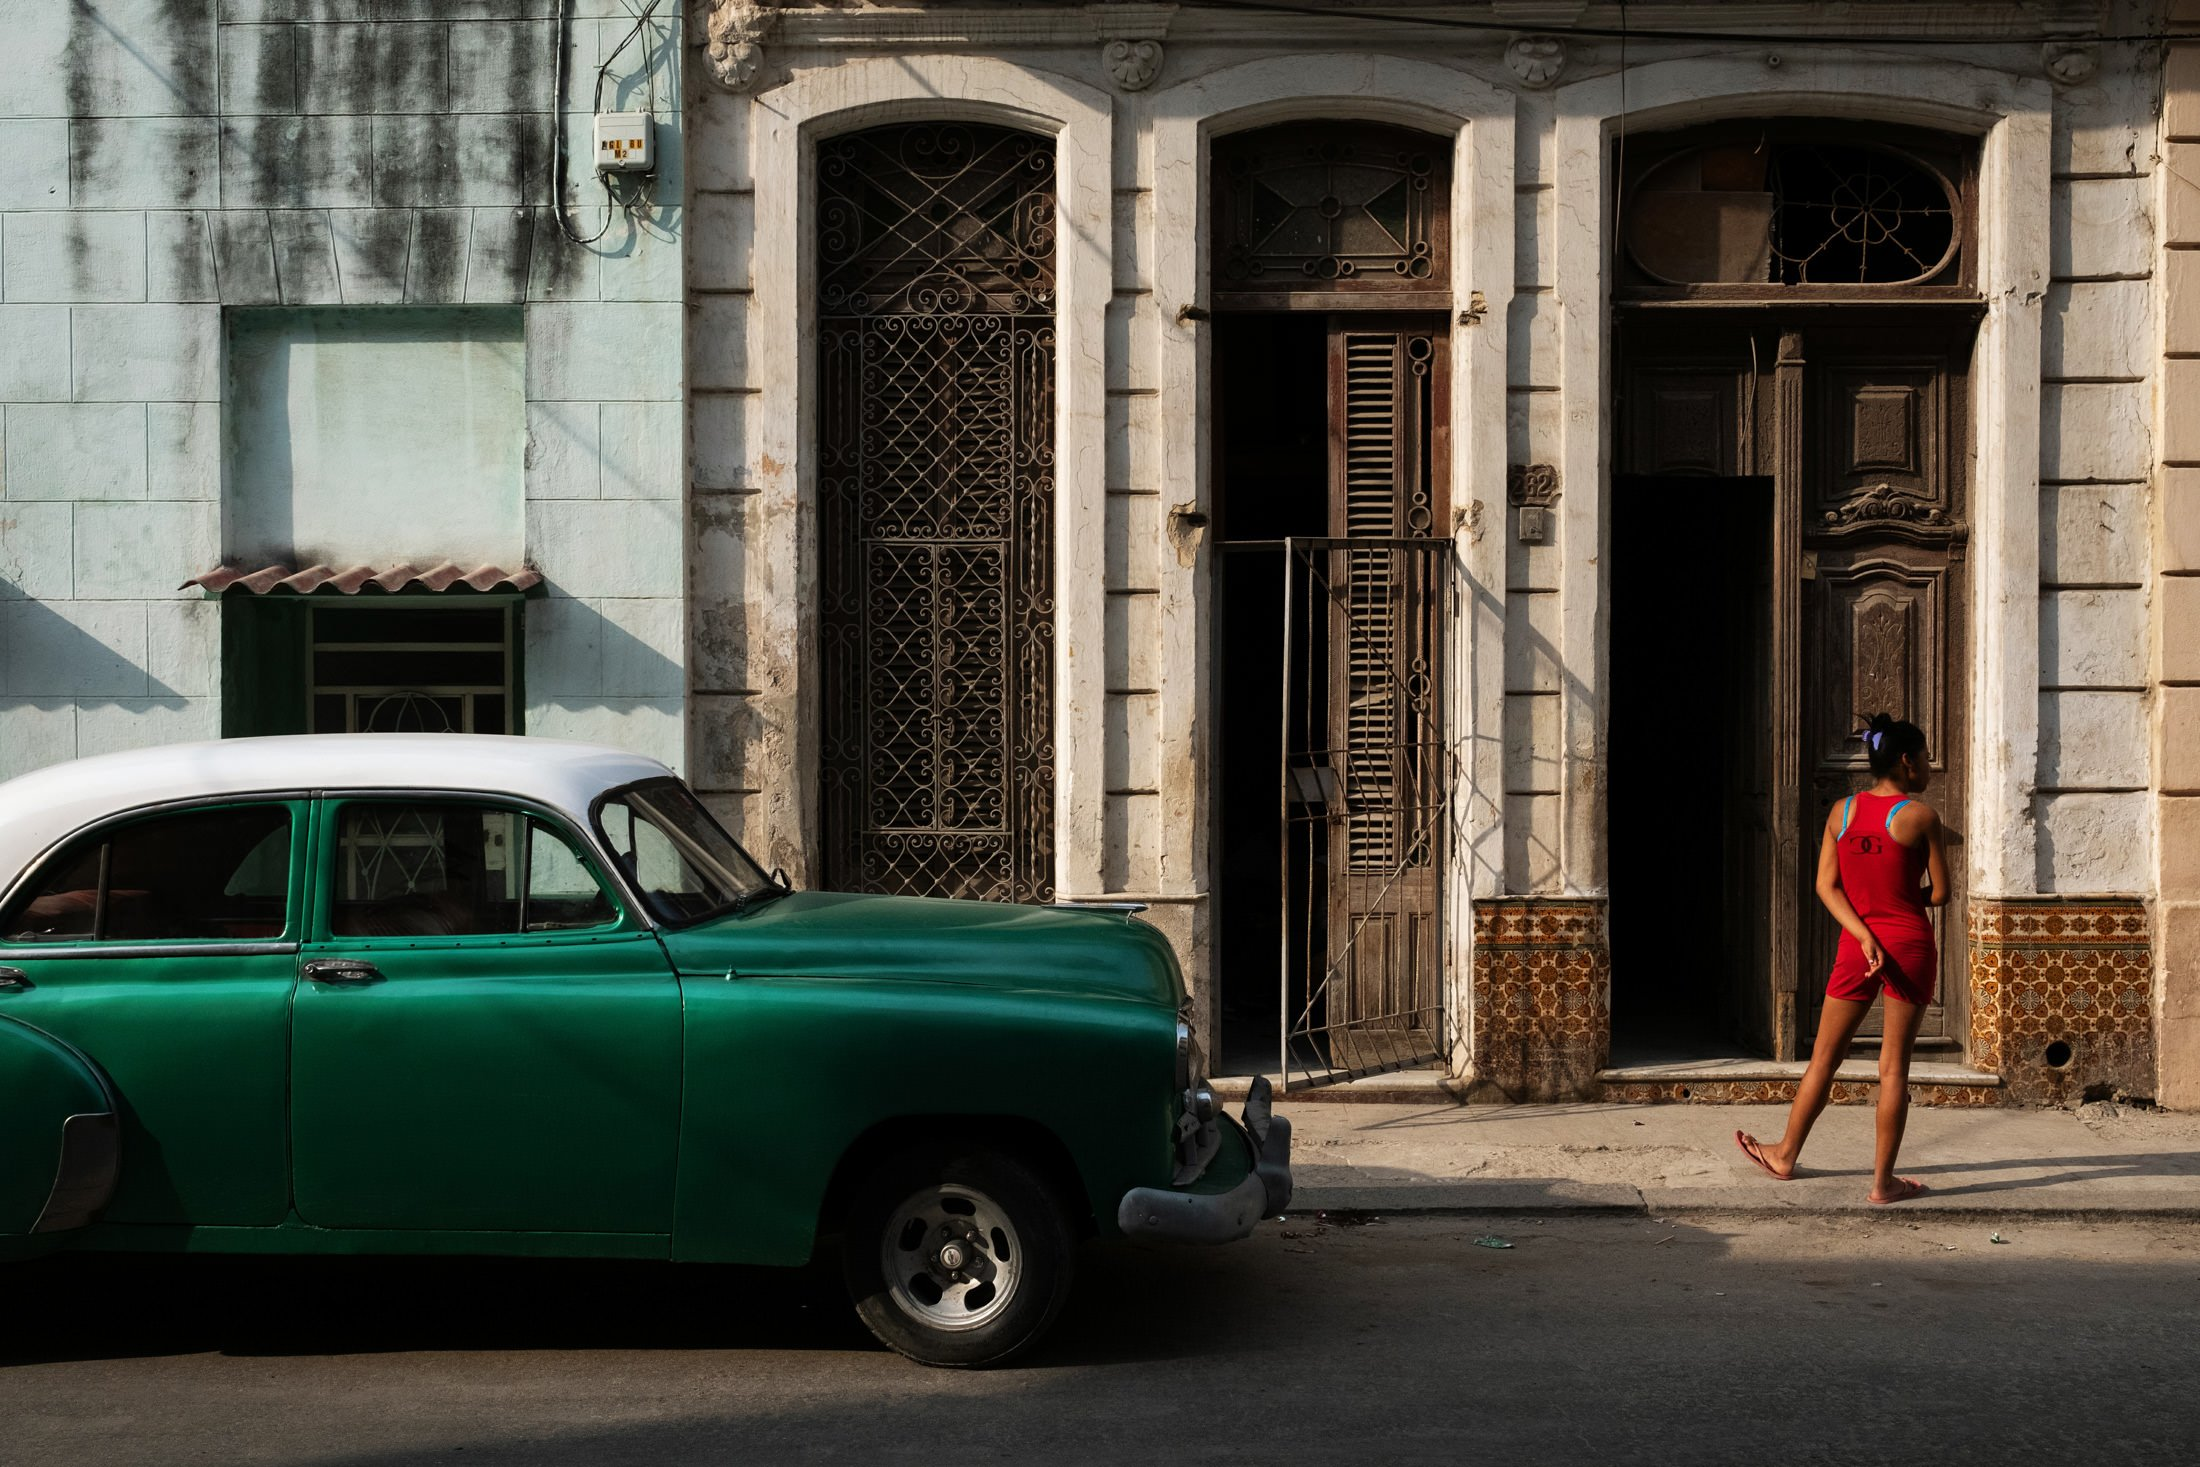 green and white cuban car with a little girl standing next to it